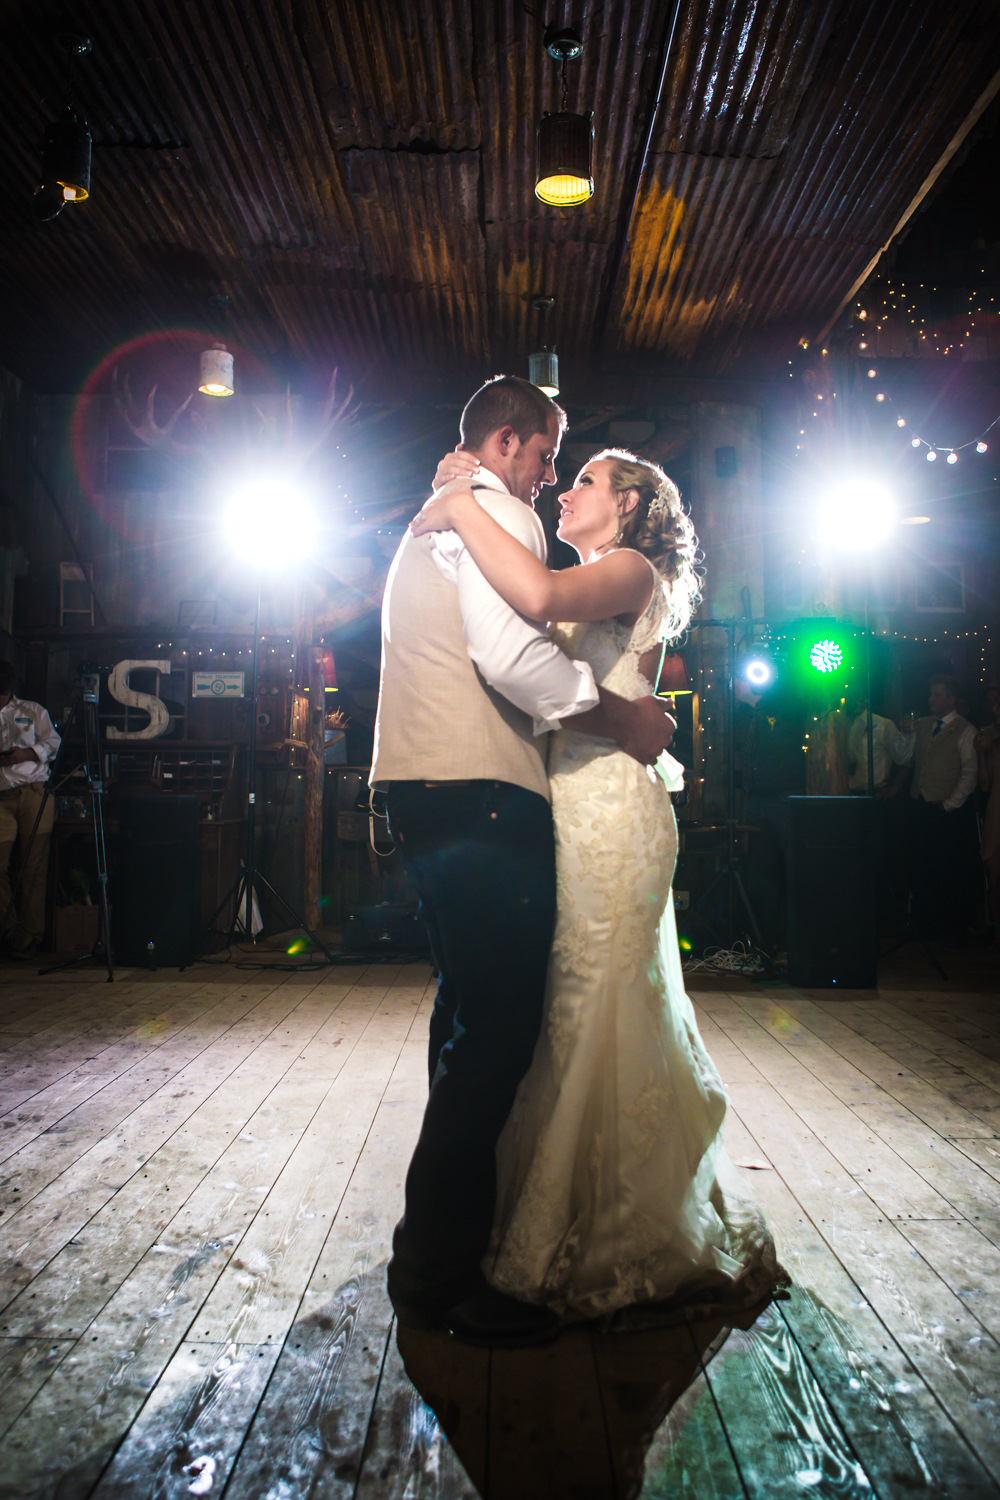 The bride and groom's first dance. Wedding at The barn at Evergreen Memorial. Photographed by JMGant Photography.